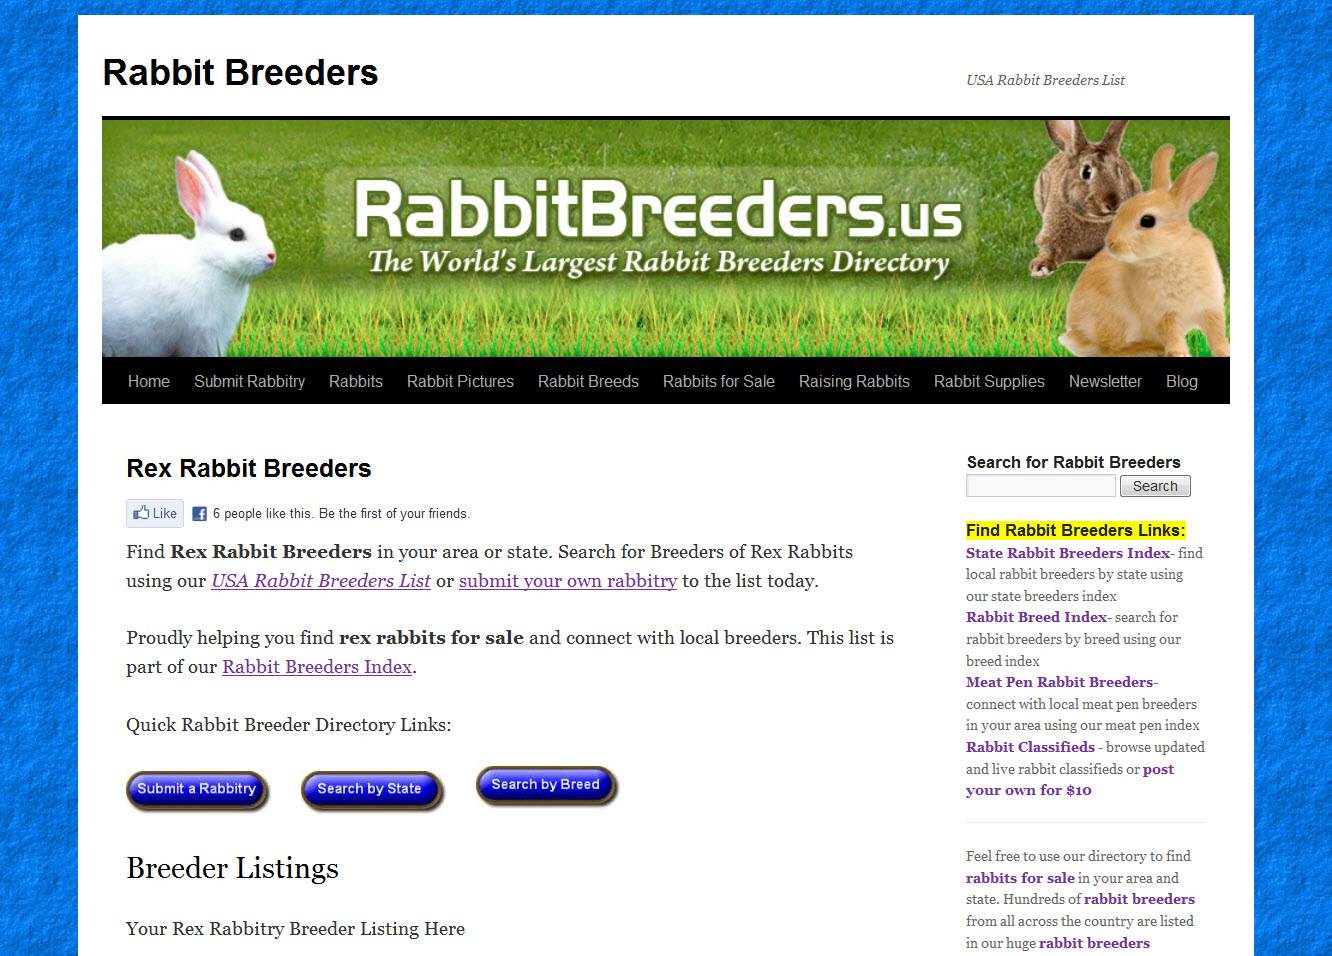 Rex Rabbits for Sale